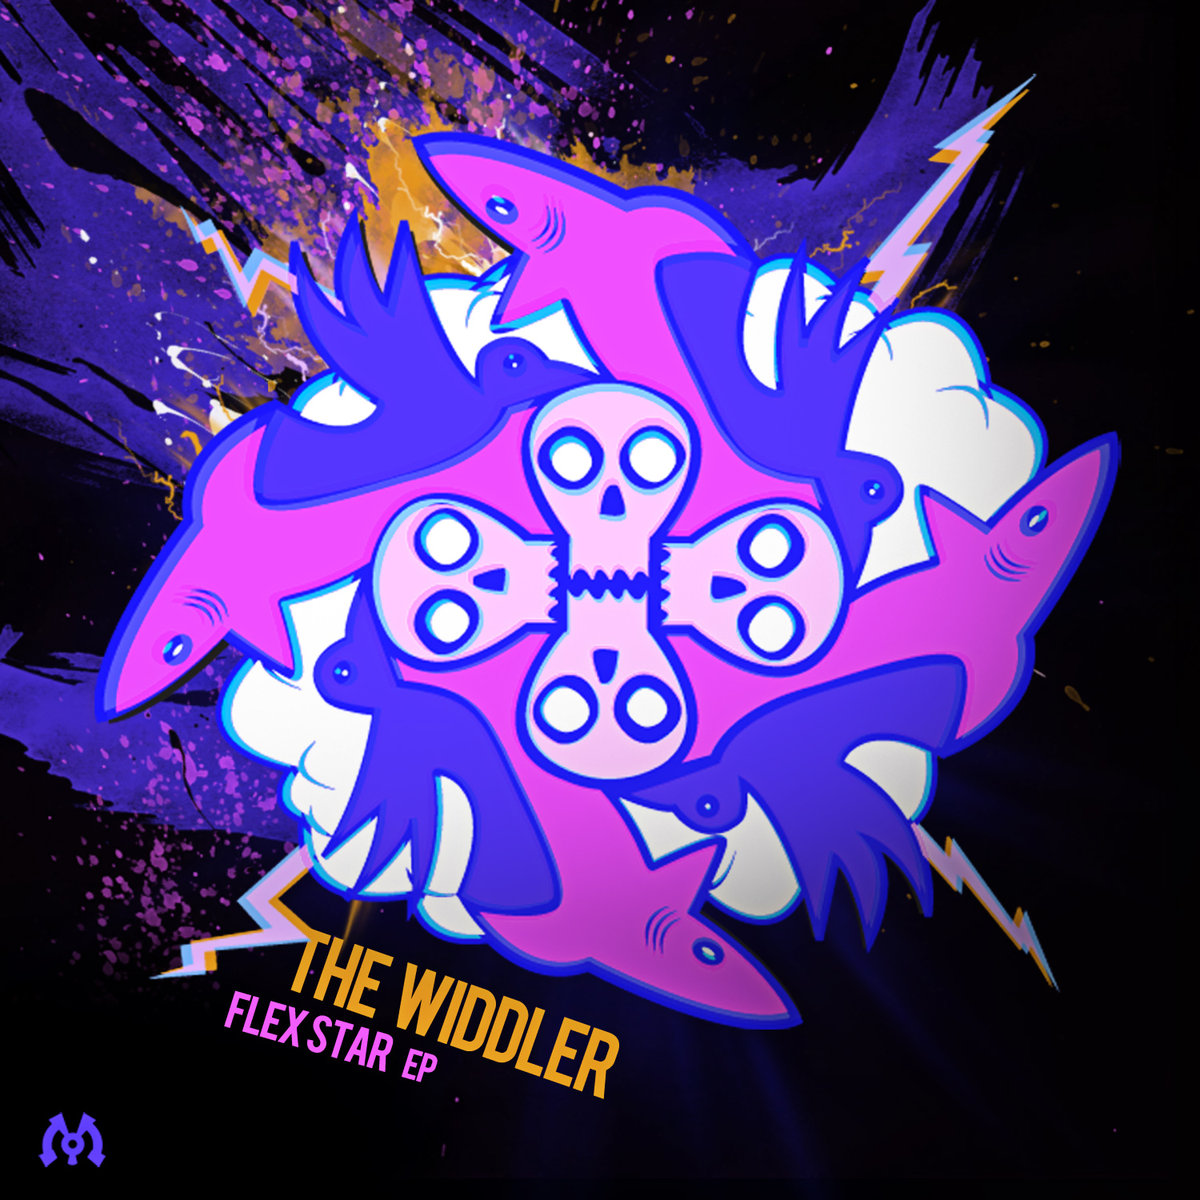 The Widdler - Flexstar (Porkchop Remix) @ 'Flexstar' album (electronic, dubstep)